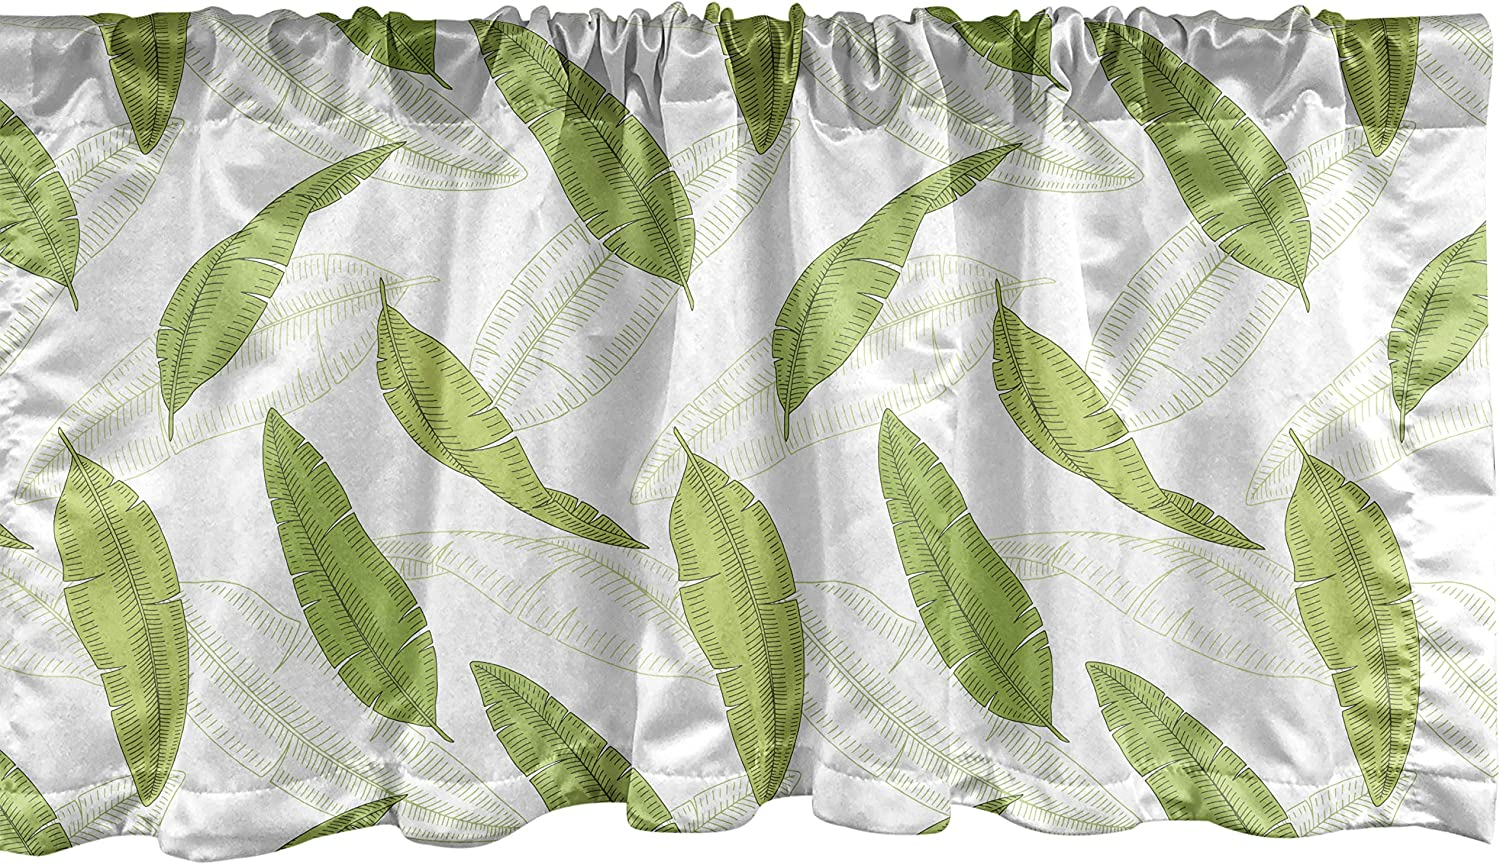 Lunarable Leaves Window Valance, Tropical Pattern with Banana Palm Leaf Monochrome Summer Aloha, Curtain Valance for Kitchen Bedroom Decor with Rod Pocket, 54